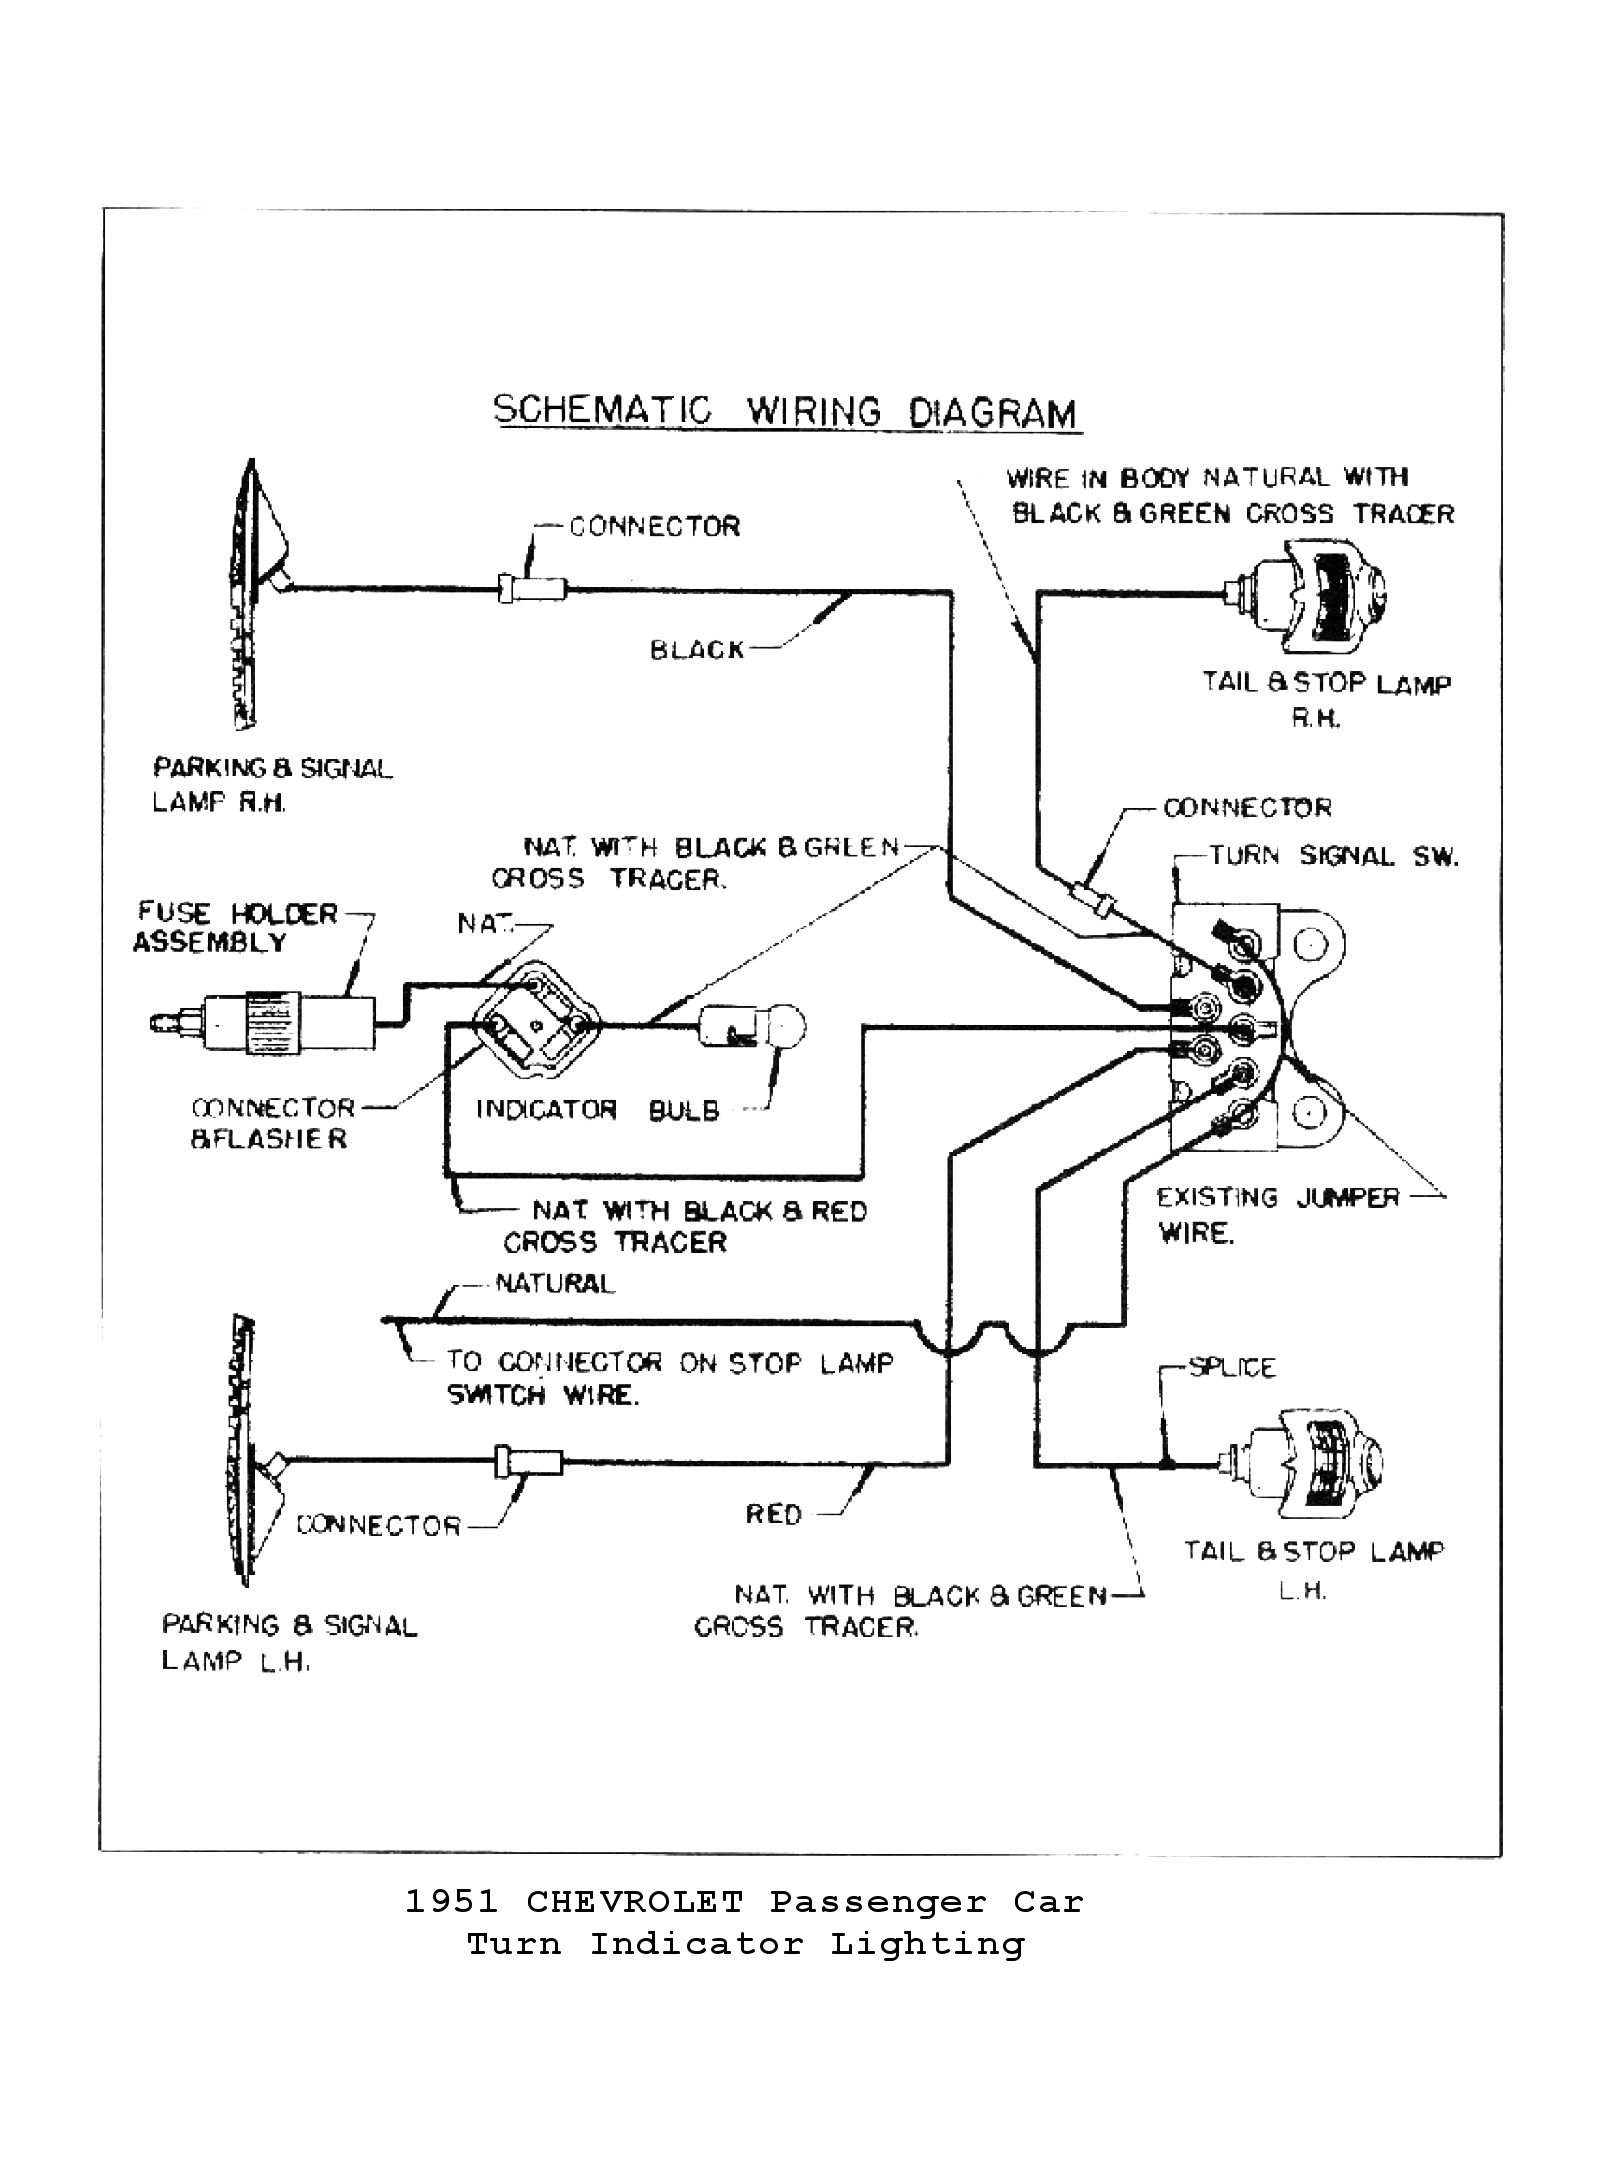 1950 Ford Headlight Switch Wiring Free Diagram For You 64 Chevy Truck Simple Schema Rh 42 Aspire Atlantis De F1